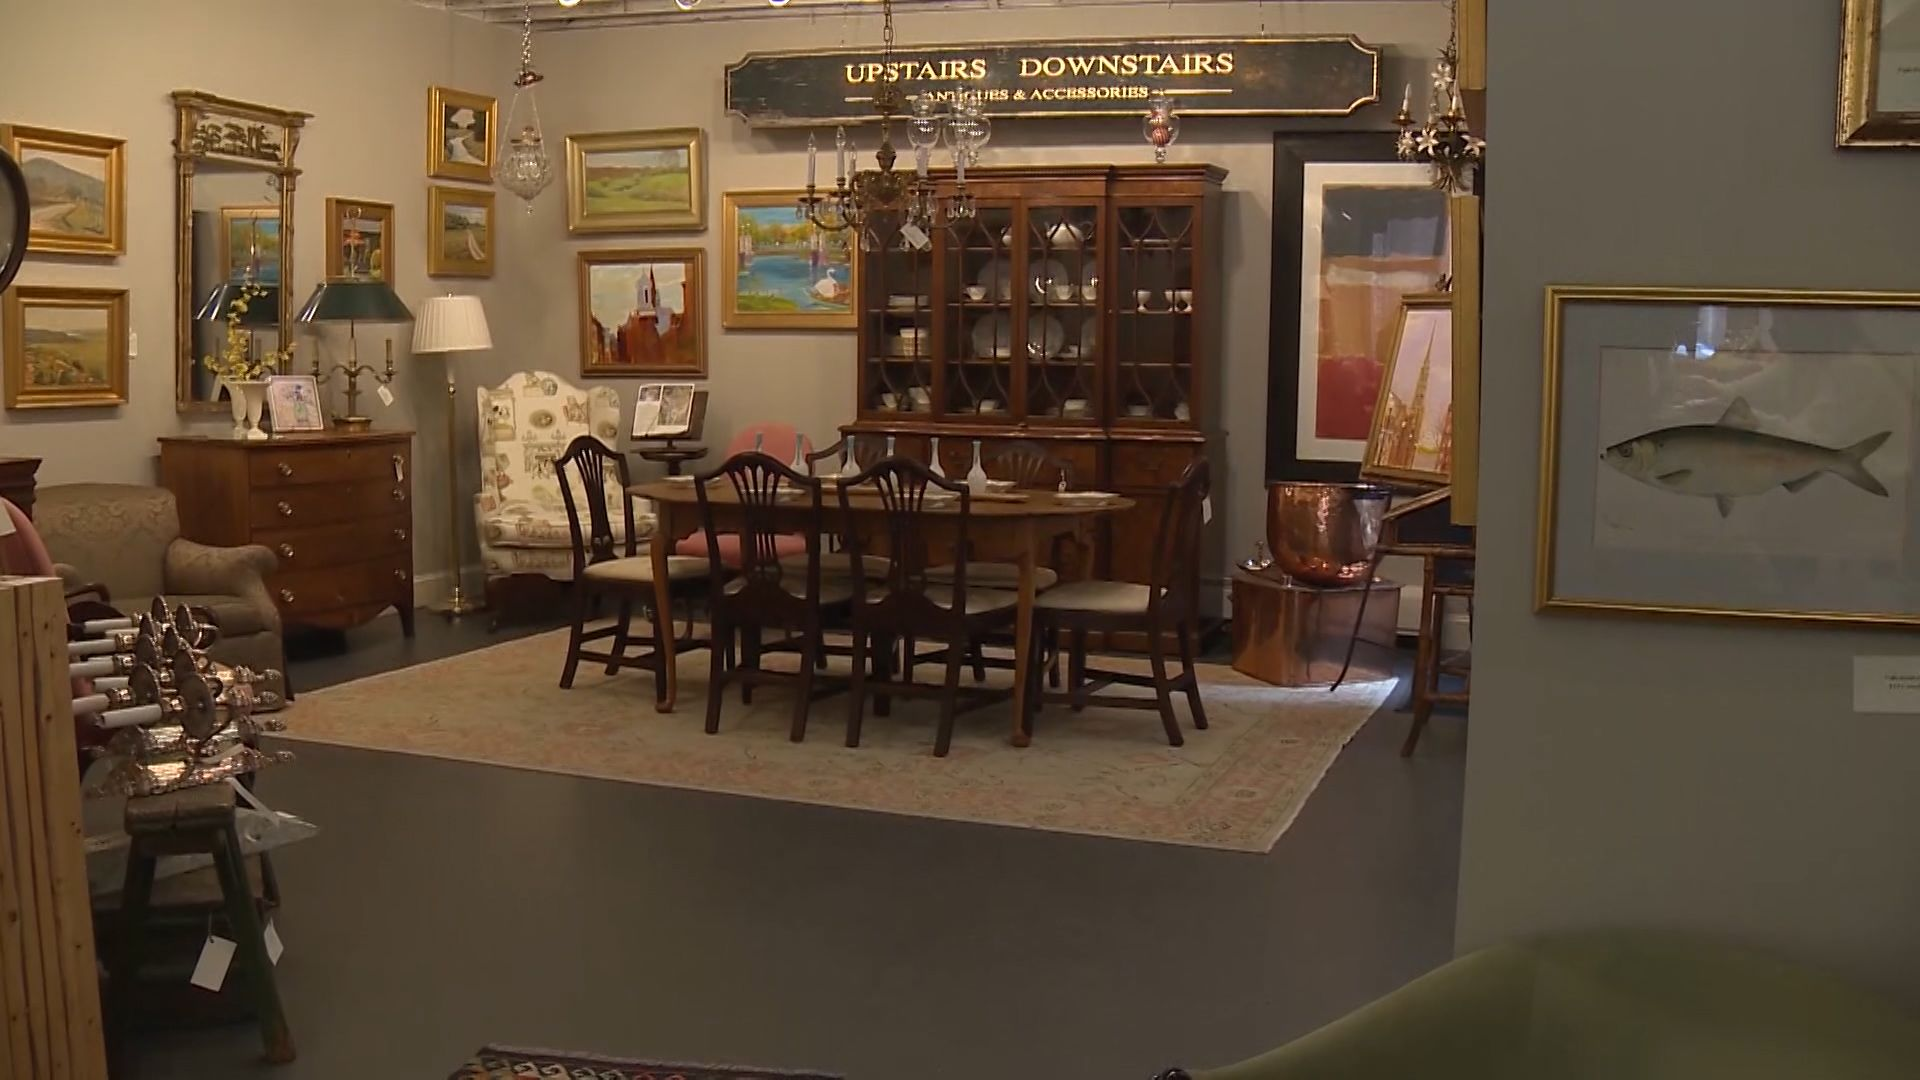 Boston antiques store able to survive hardships of pandemic